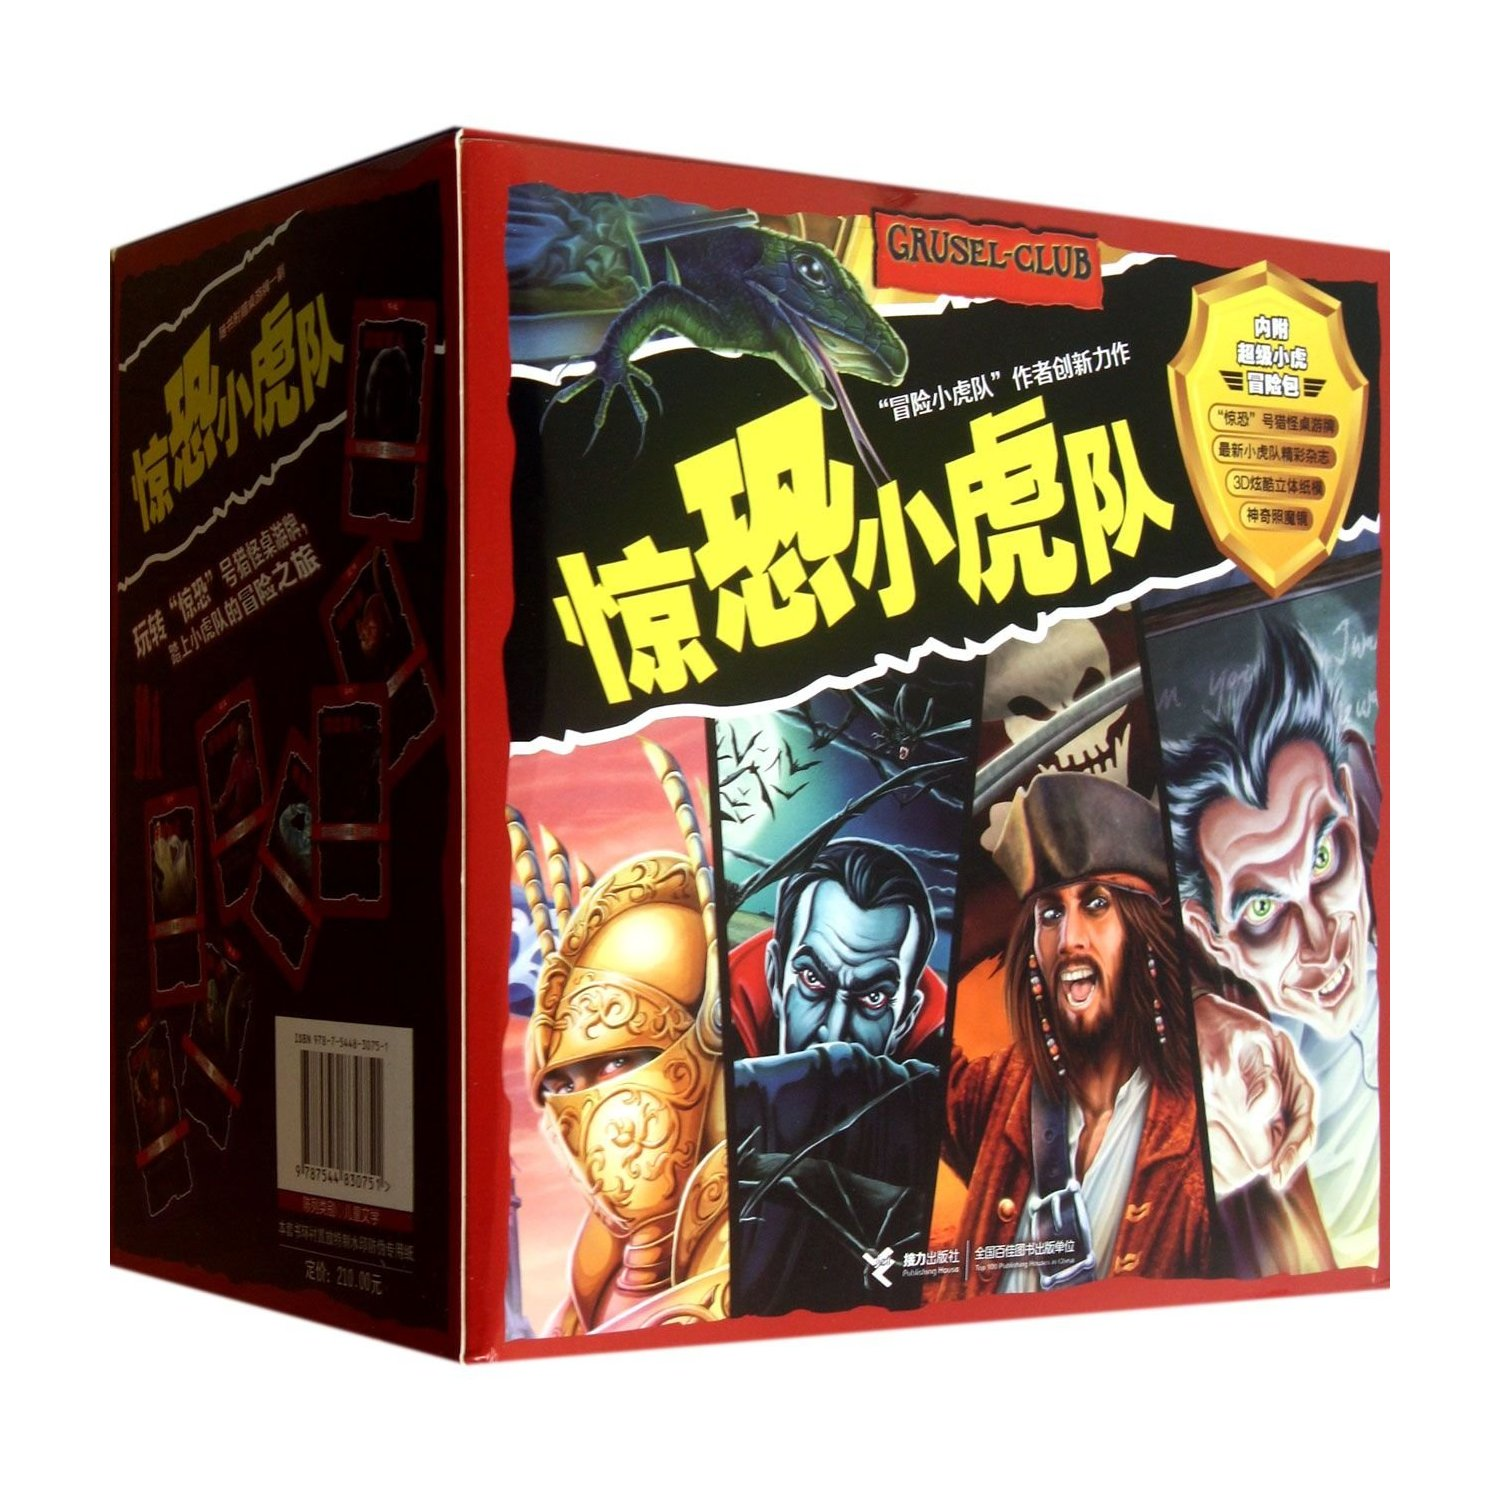 Genuine free shipping panic tigers (gift pack a full 14 volumes) super tigers adventure pack kit included decryption card Children's books children's push to understand the thrilling suspense holmes mystery books relay press